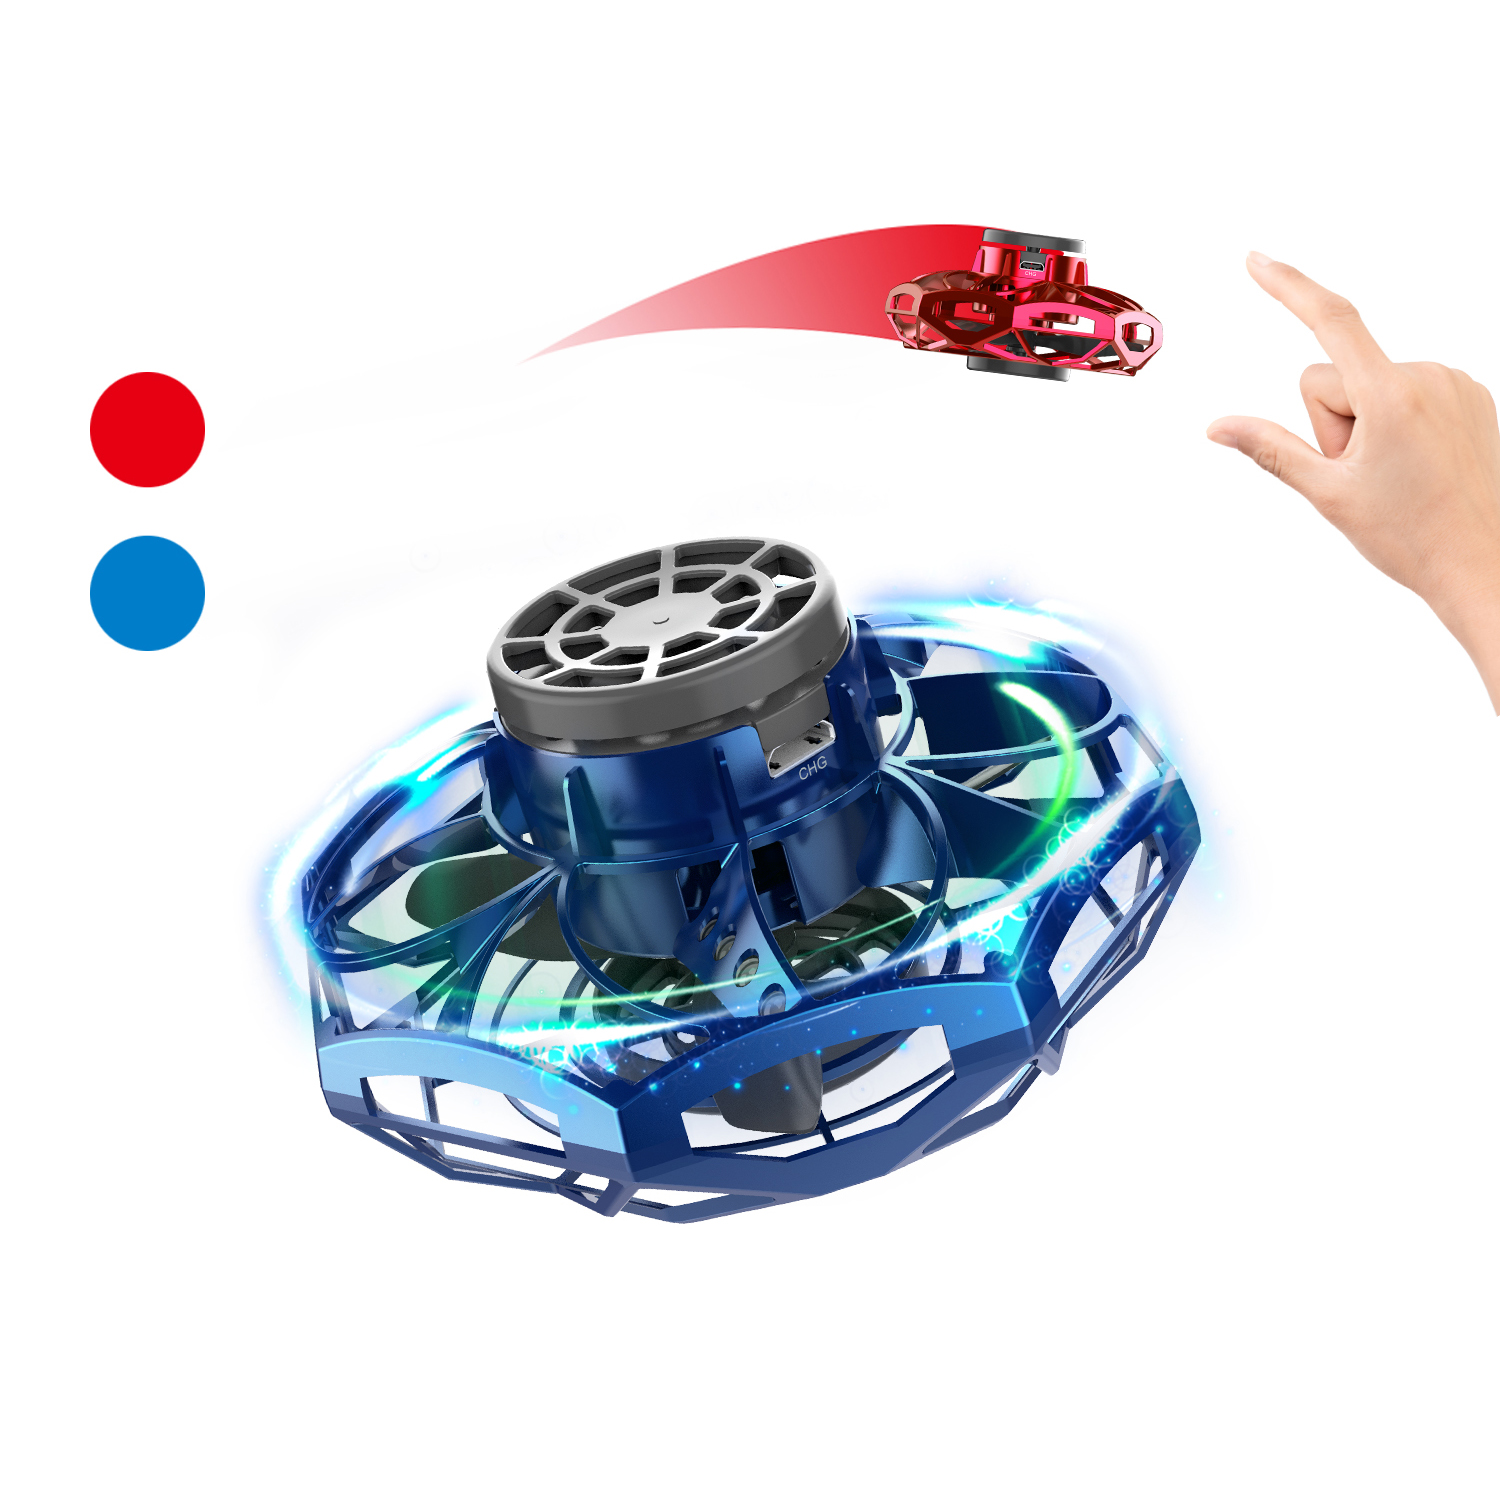 Mini Finger Drone Hand Operated Drone with RGB Light Flying Spinner for Kids